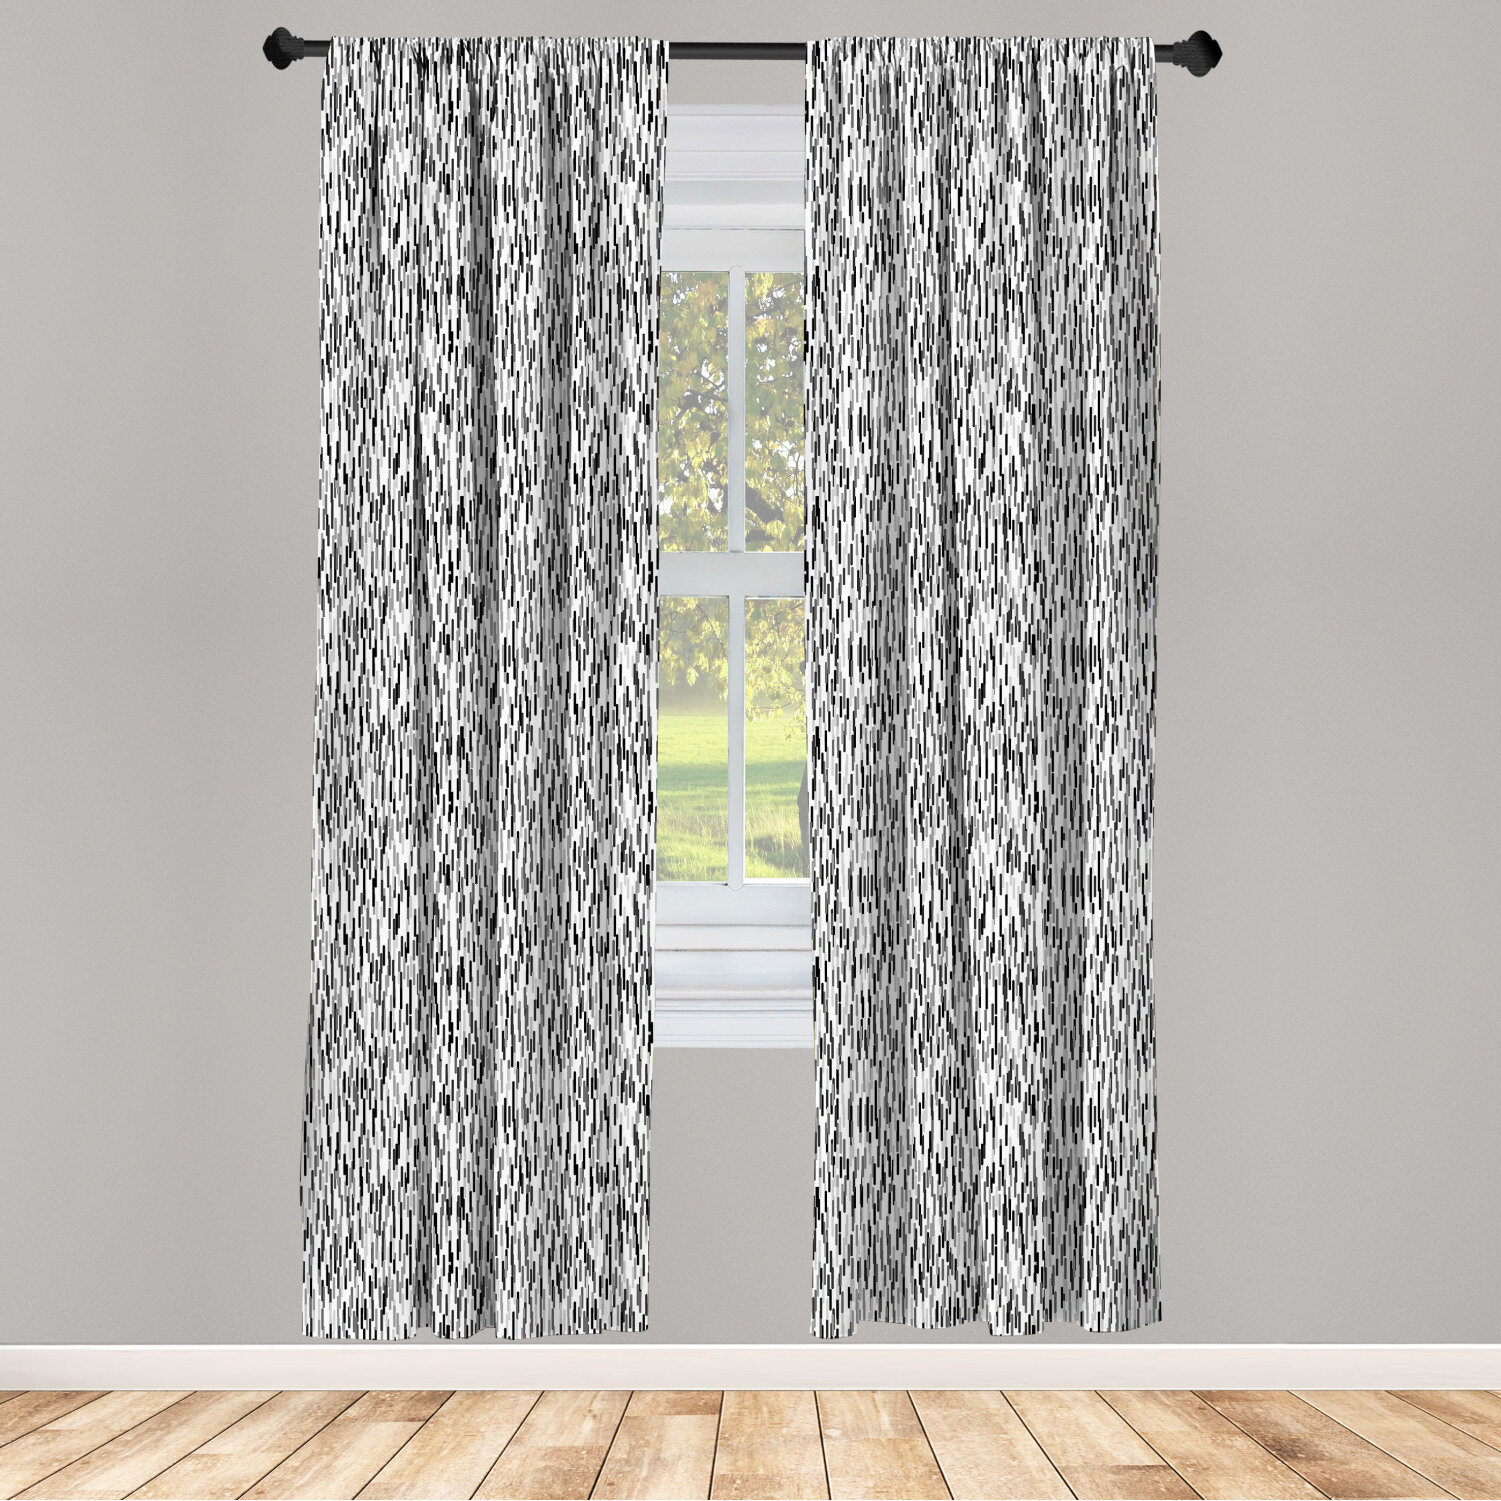 East Urban Home Ambesonne Abstract Window Curtains Scandinavian Pattern With Lines Geometrical Greyscale Design Simplistic Lightweight Decorative Panels Set Of 2 With Rod Pocket 56 X 63 Black Grey White Reviews Wayfair